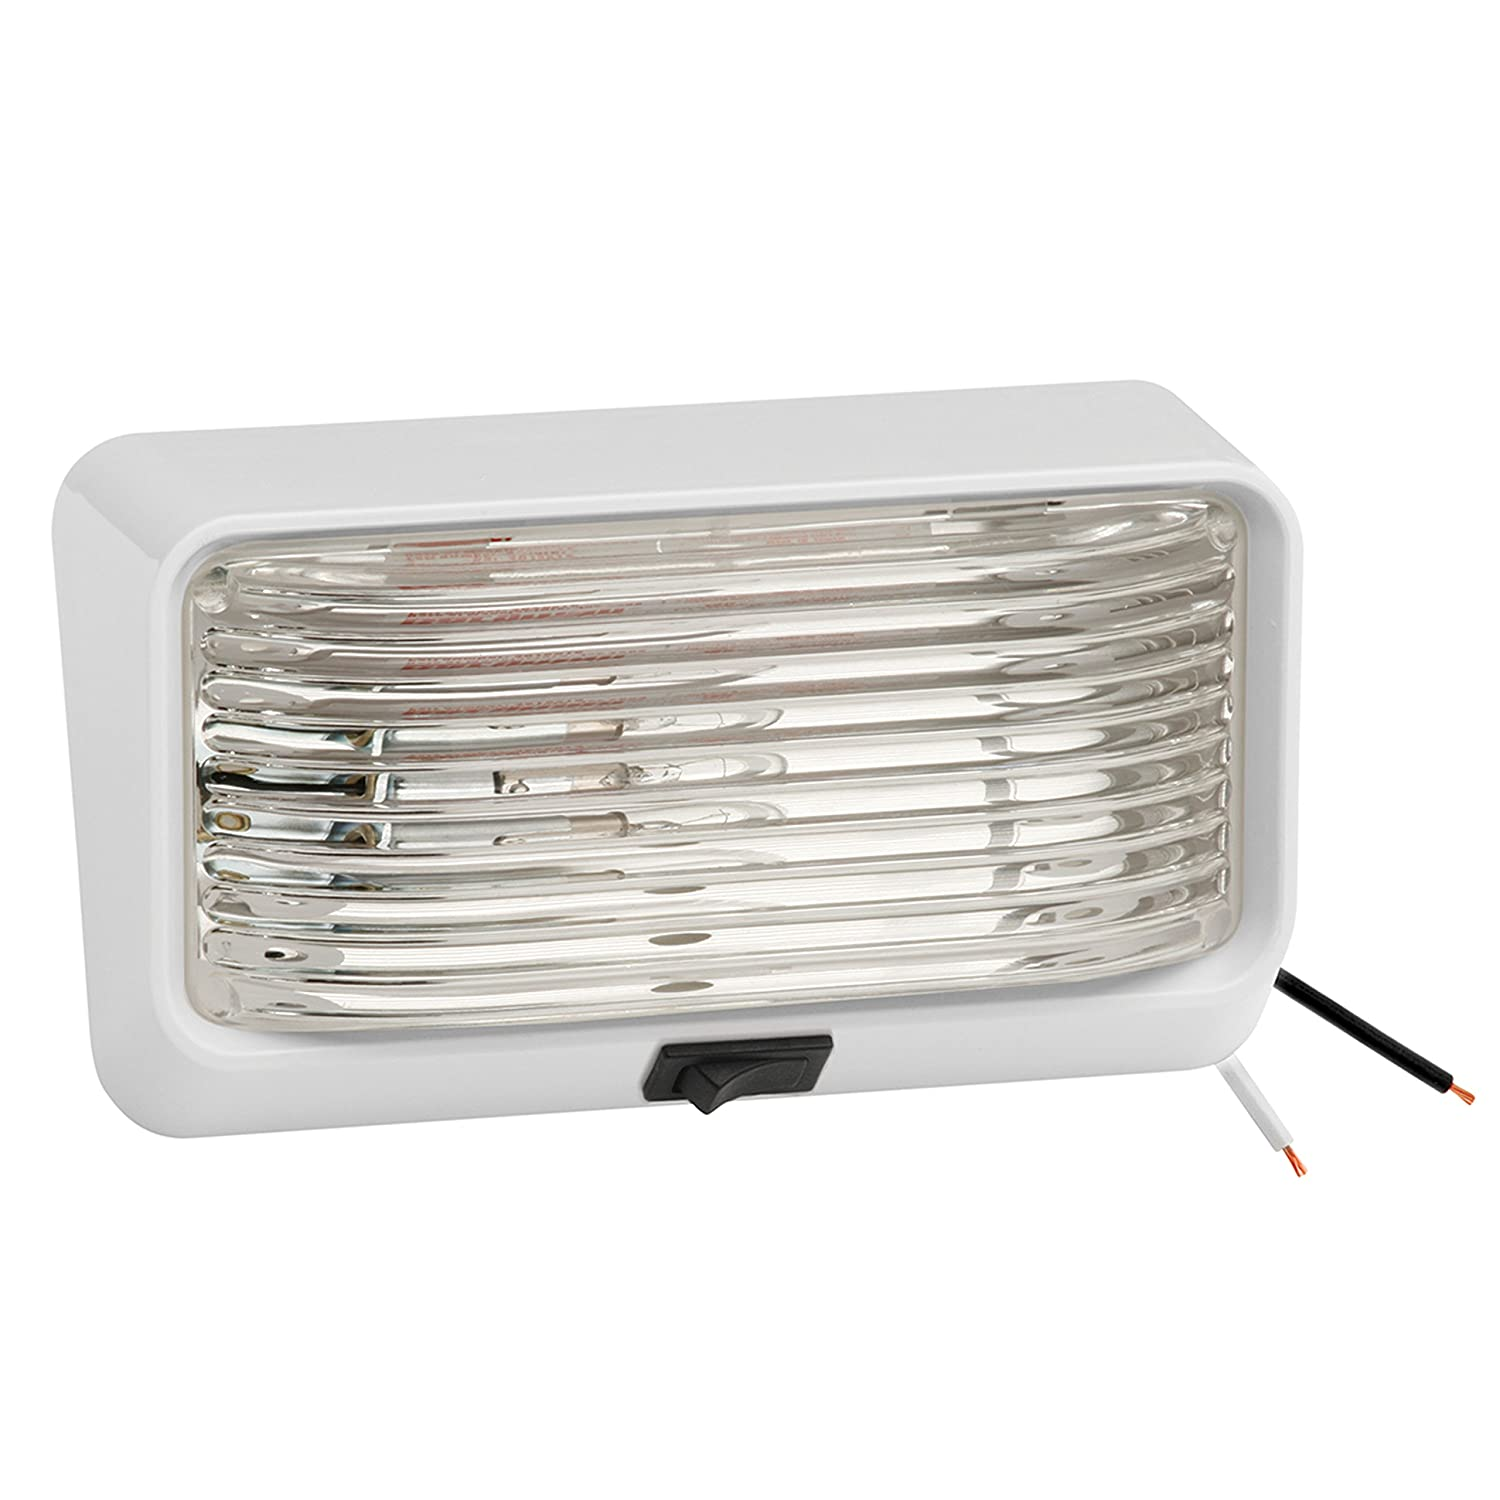 Amazon.com: Bargman 34-78-517 Porch Light #78 - Clear with White ...